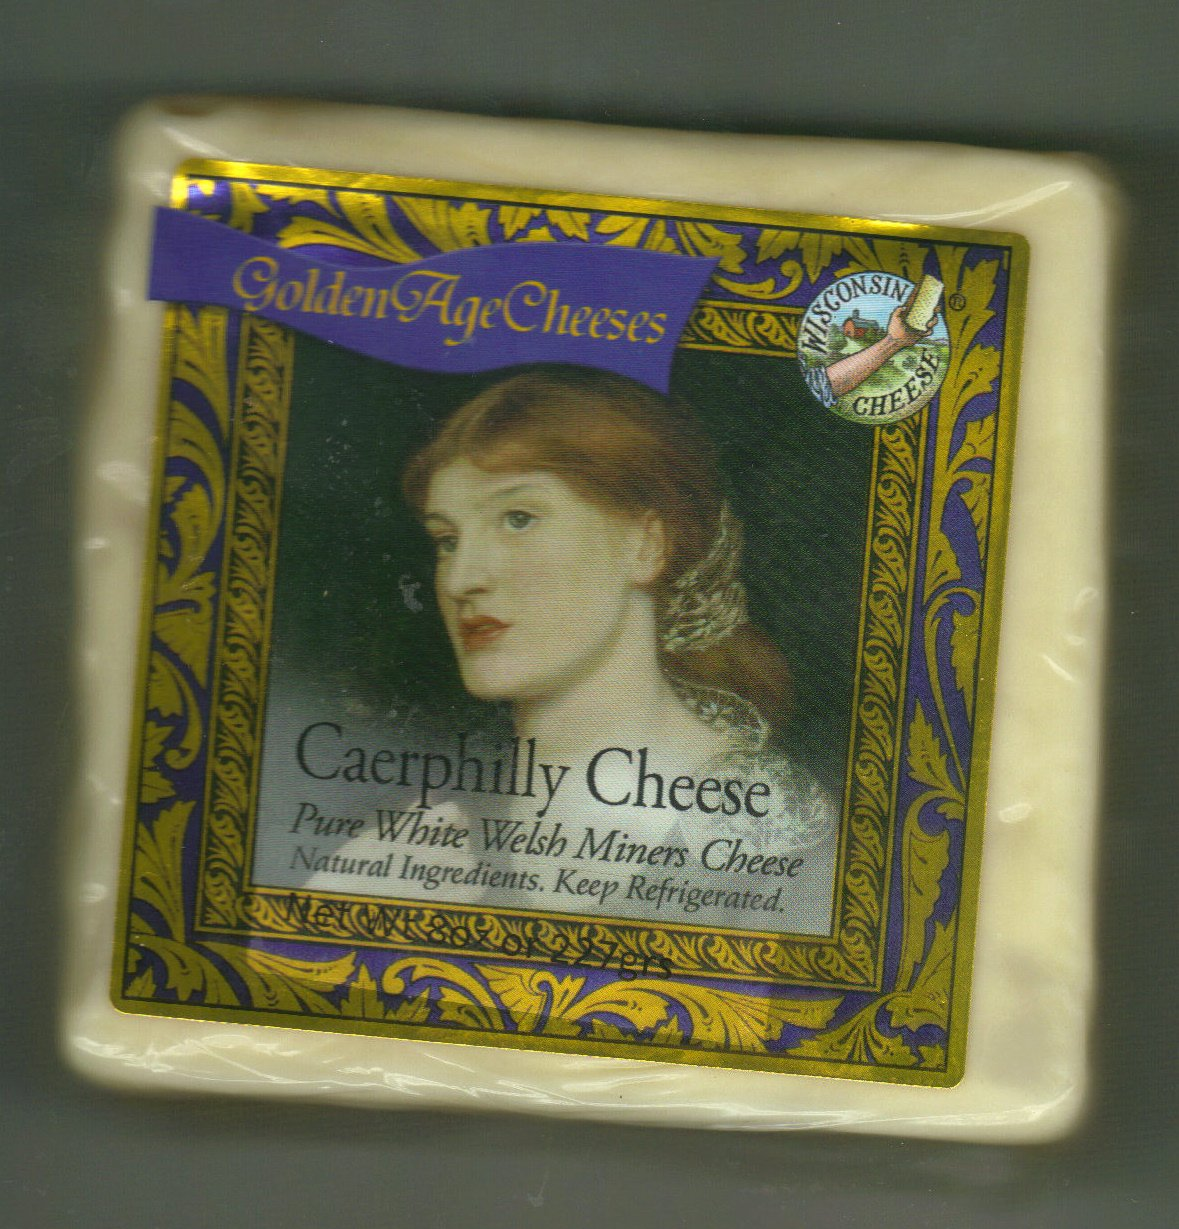 Golden Age Cheeses 2lbs Pure White Welsh Miners Real Wisconsin Cheese